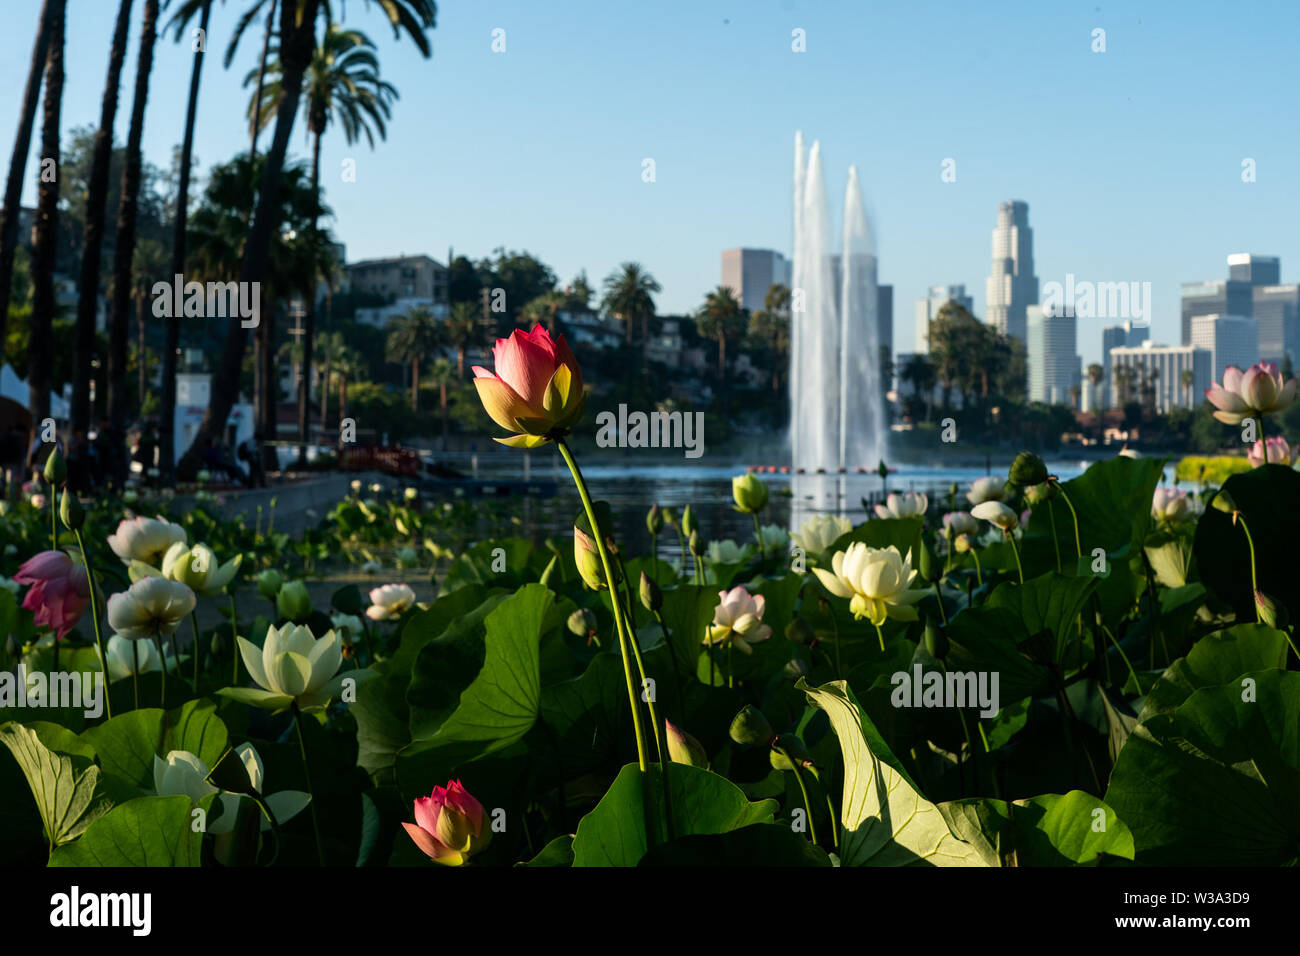 Los Angeles, USA. 13th July, 2019. Lotus flowers are seen during the 2019 Lotus Festival in Los Angeles, the United States, July 13, 2019. Credit: Qian Weizhong/Xinhua/Alamy Live News Stock Photo